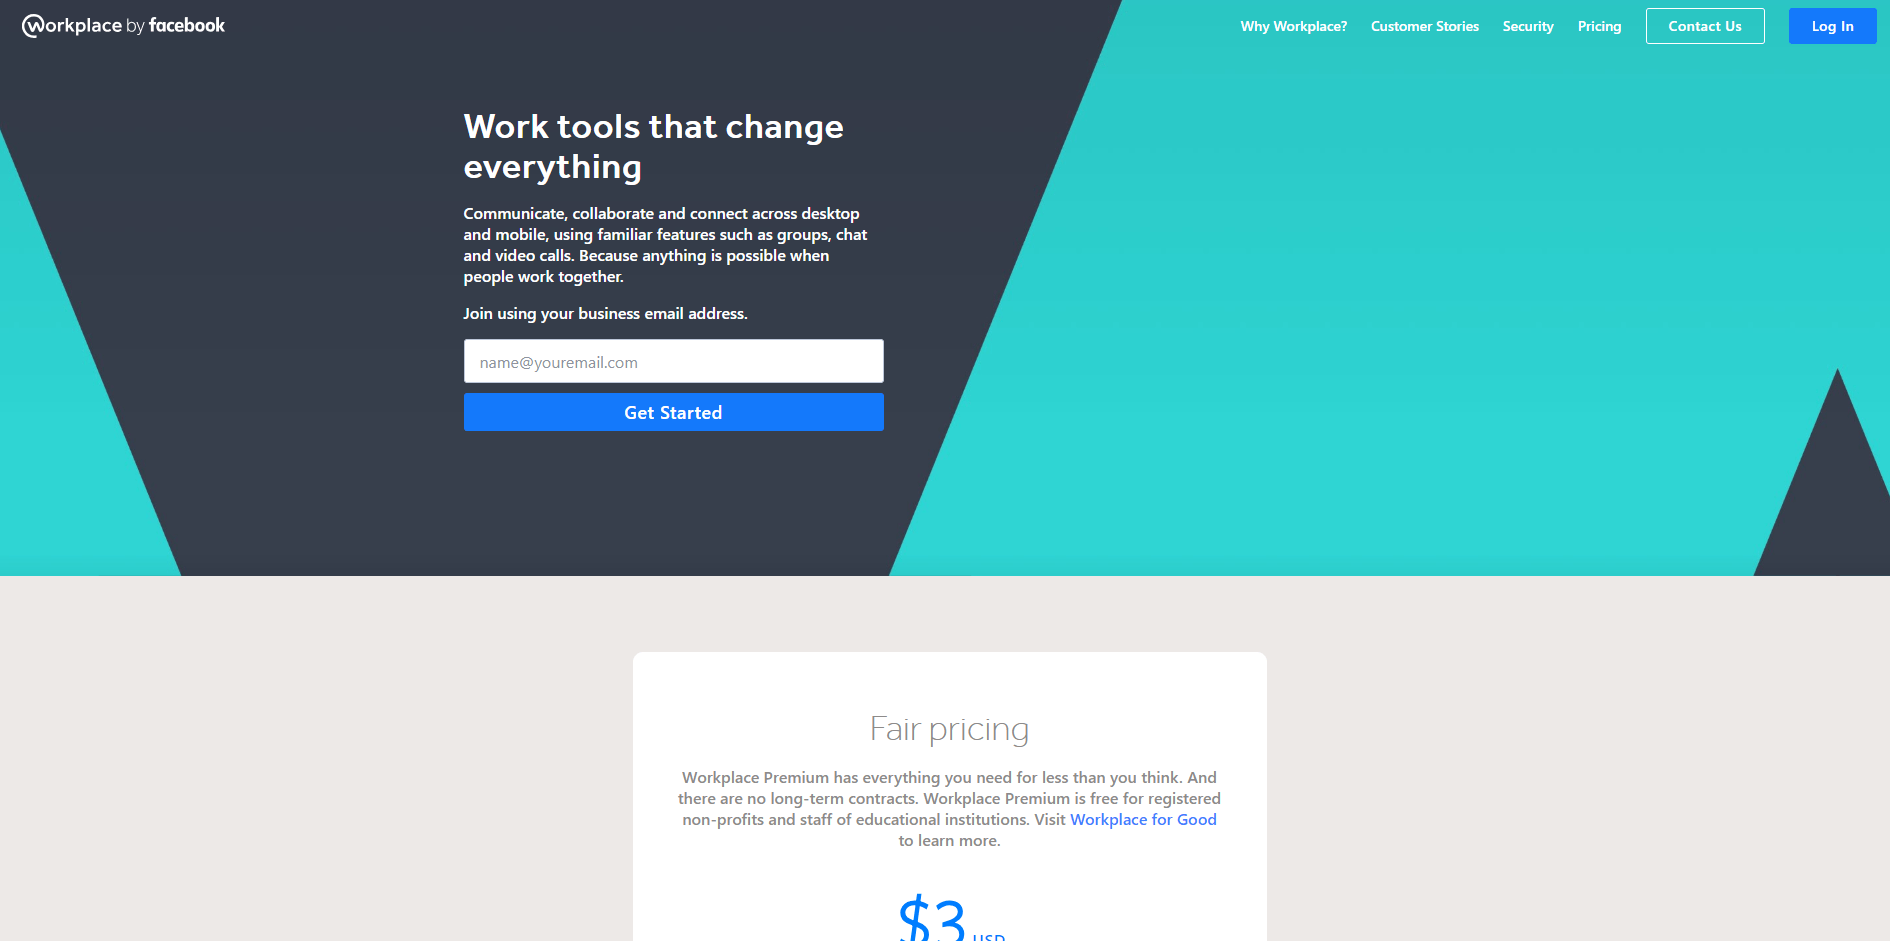 Workplace.com landing page